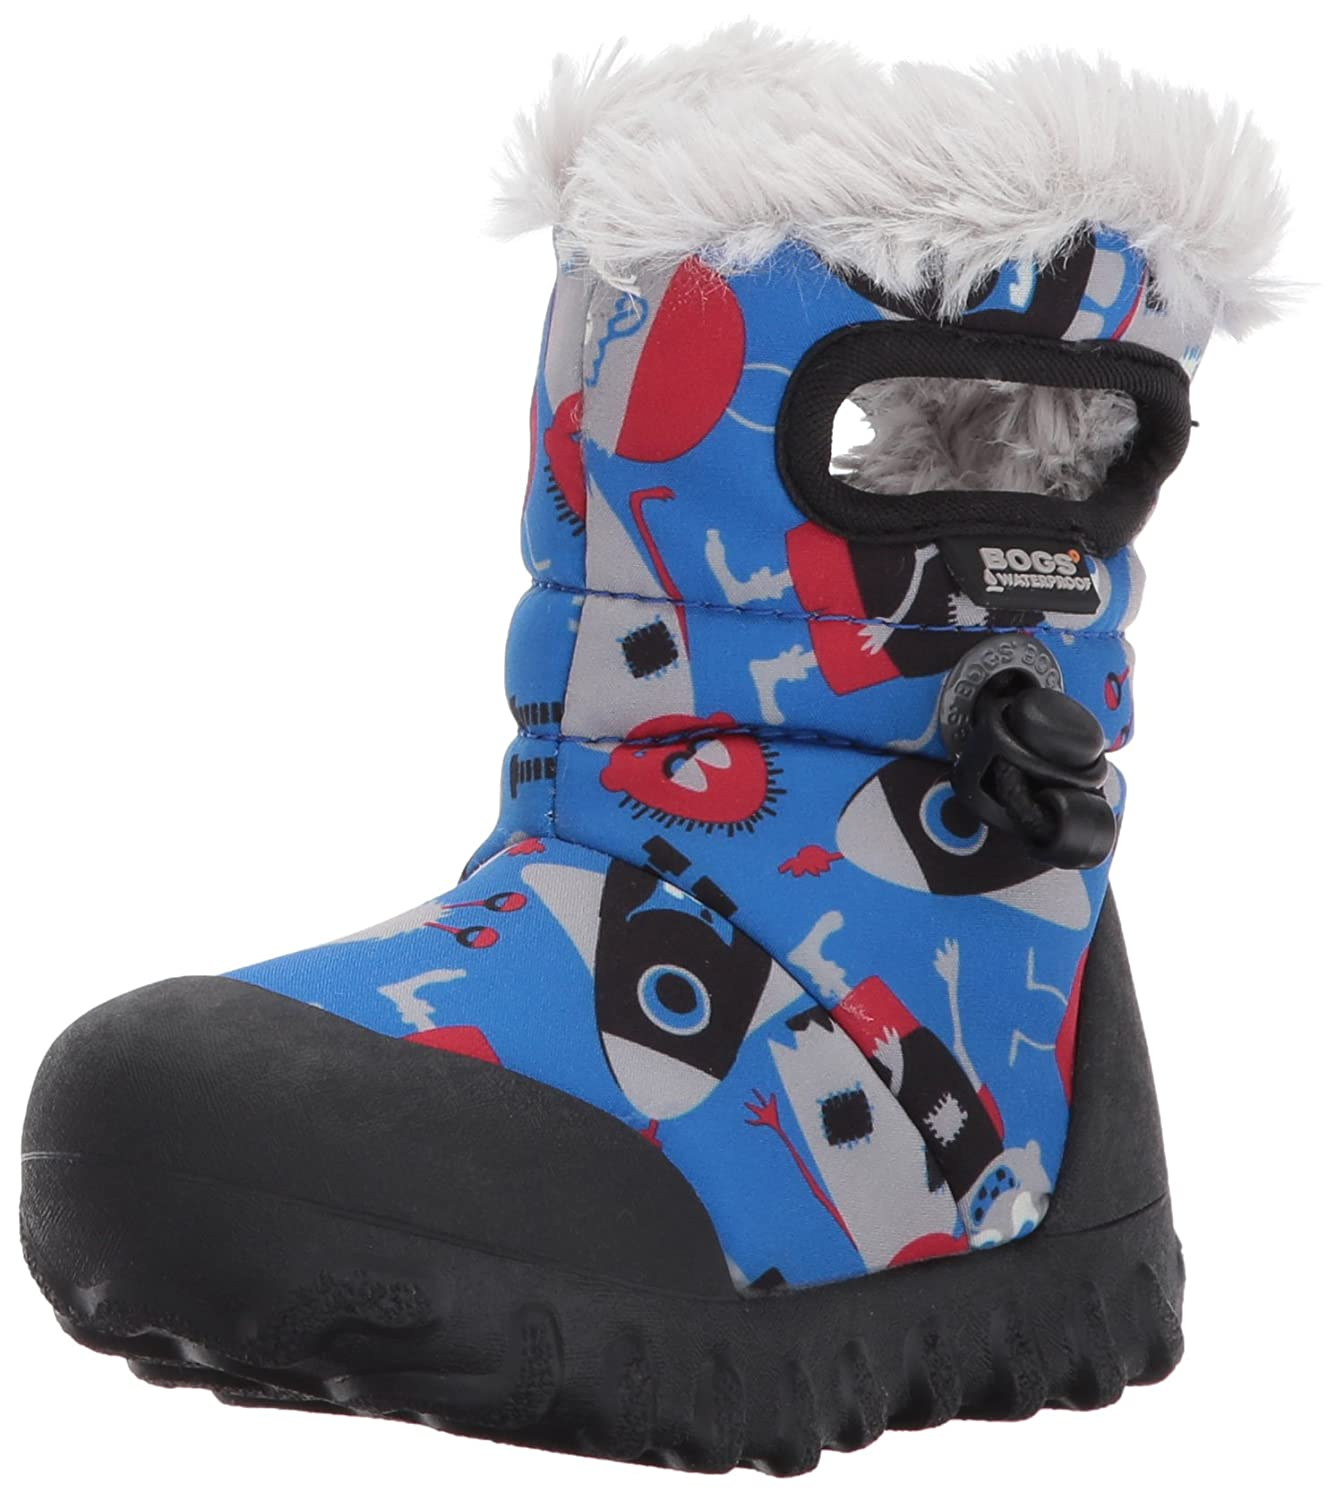 097ab5b708 Details about Bogs Kids' B-Moc Waterproof Insulated Toddler Winter Boot